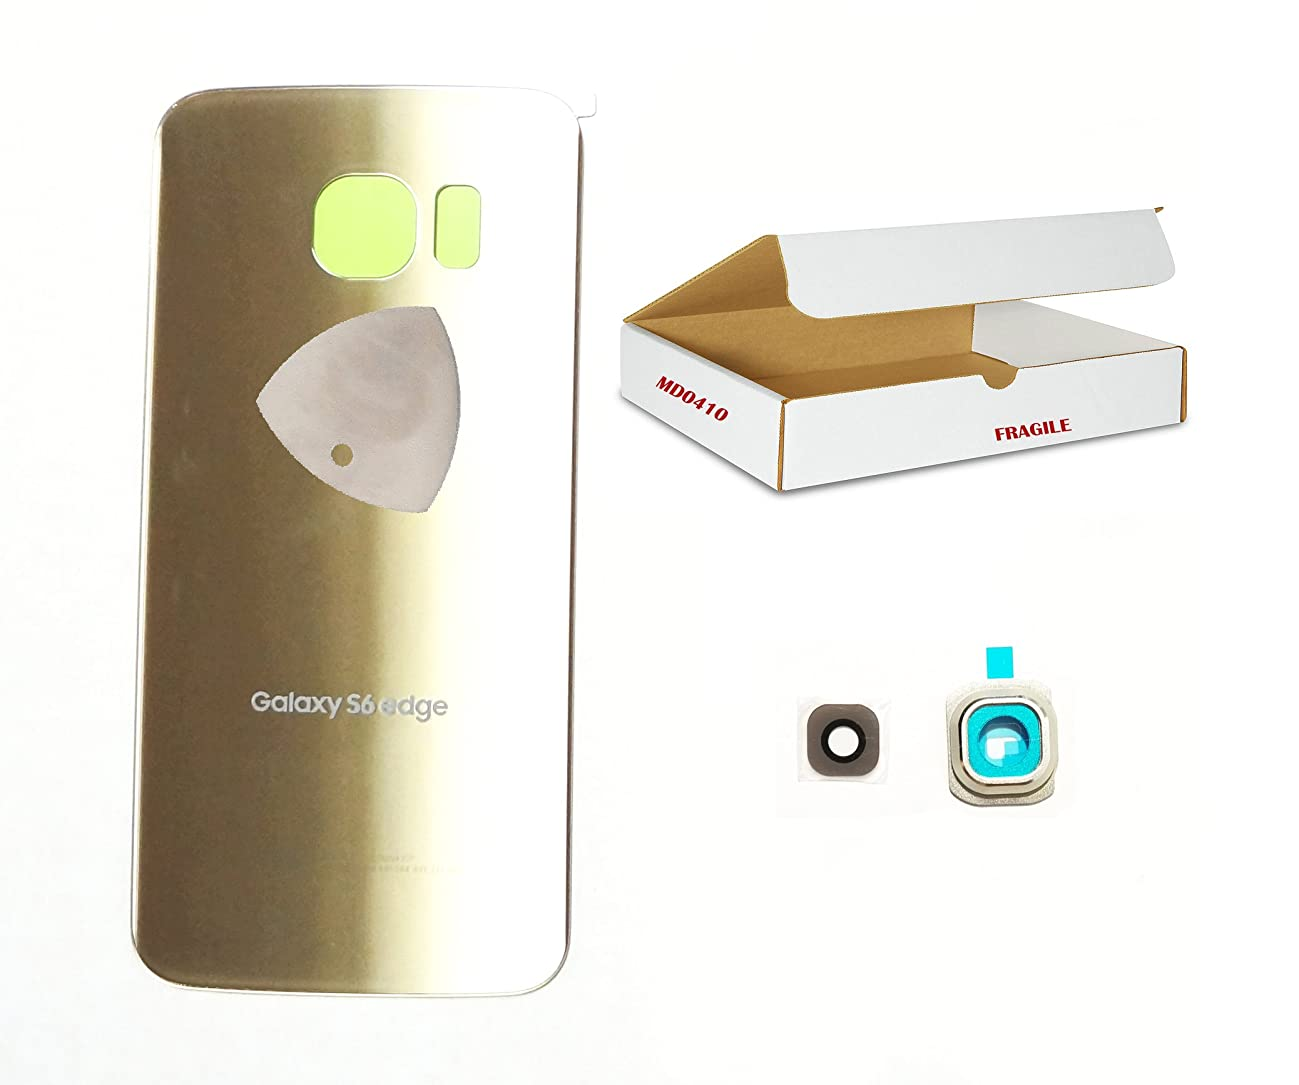 (md0410) Gold back door rear battery housing camera lens cover Compatible for Galaxy S6 Edge G925 replacement + adhesive + opening tool